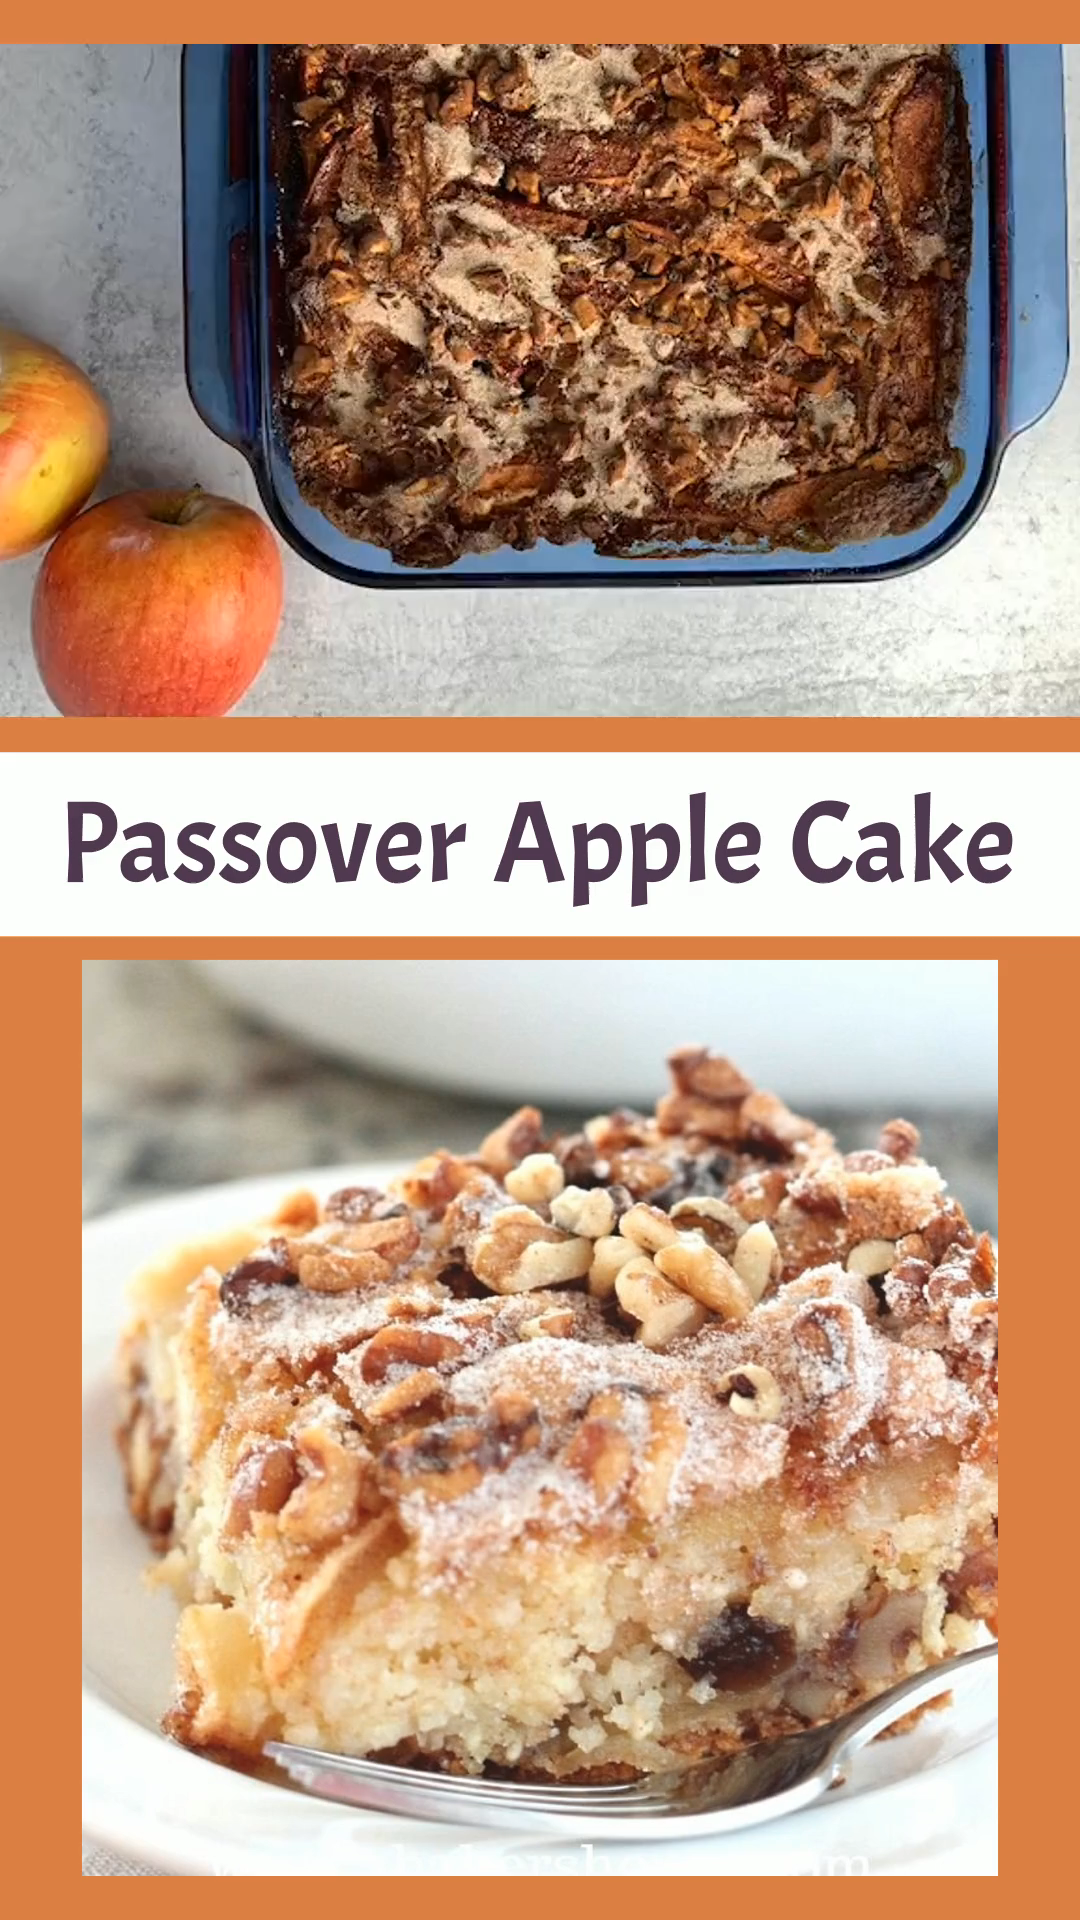 Passover Apple Cake {video}